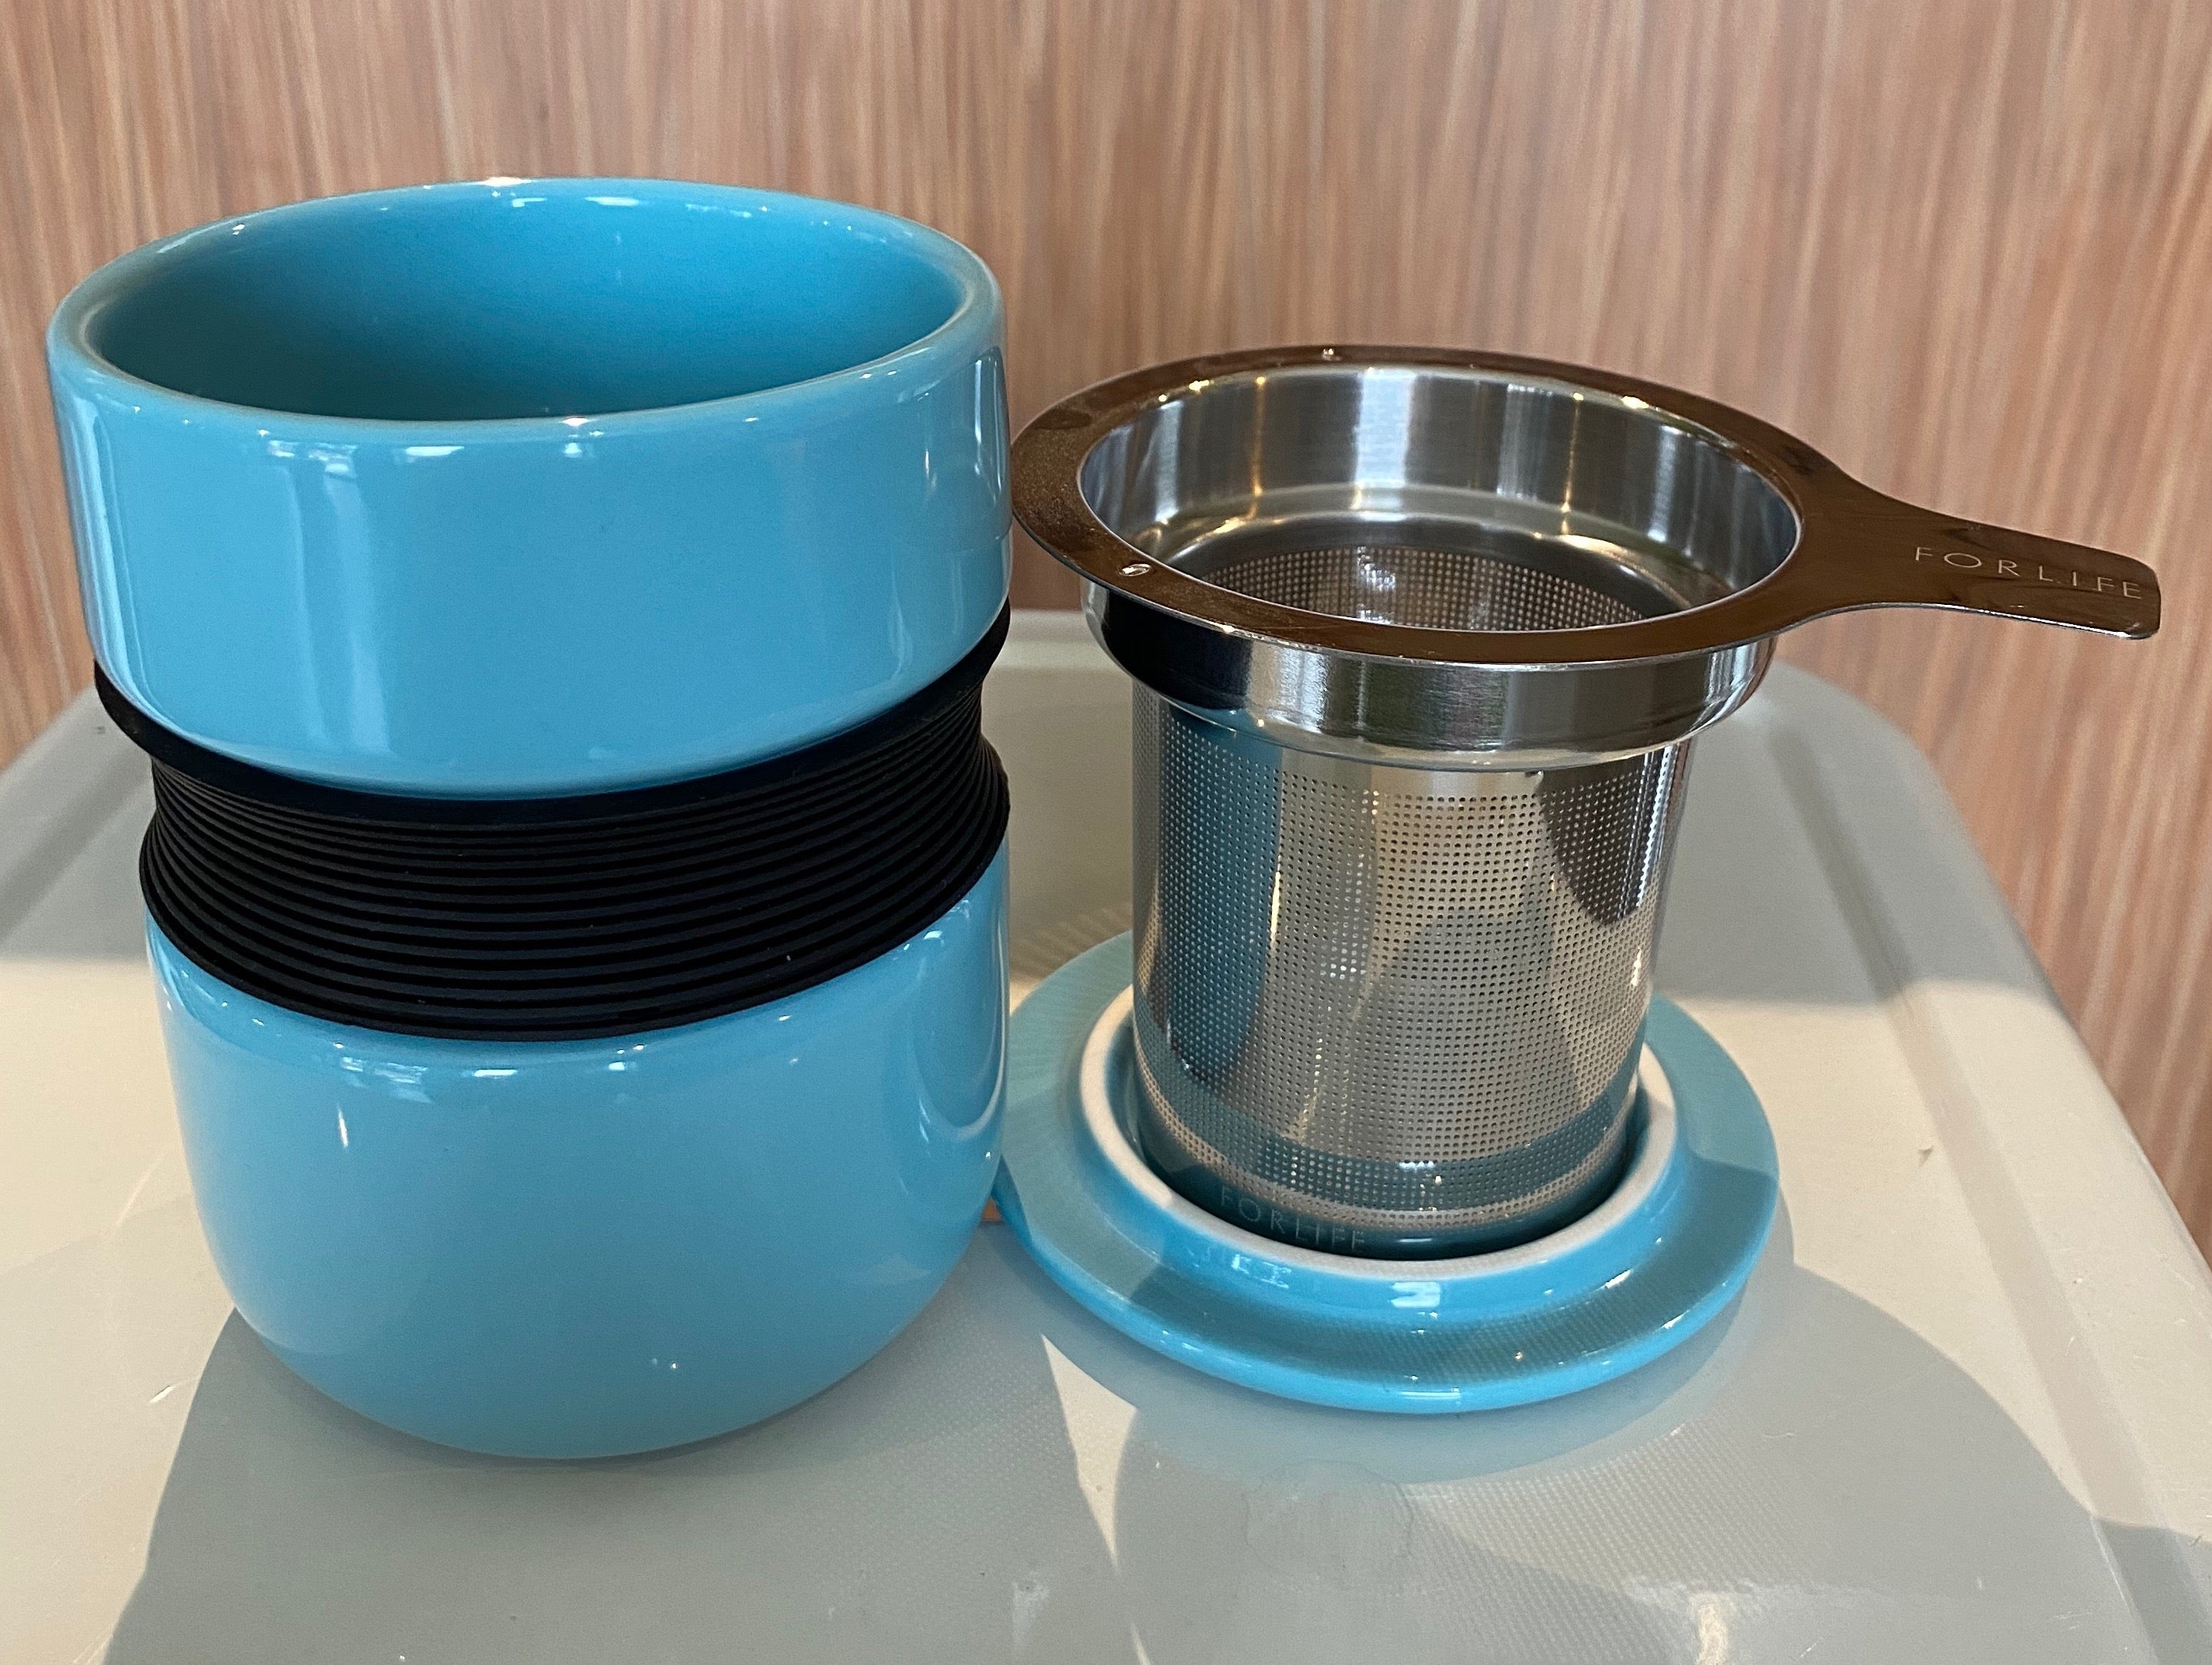 Turquoise Asian style tea mug with infuser & lid, For Life brand